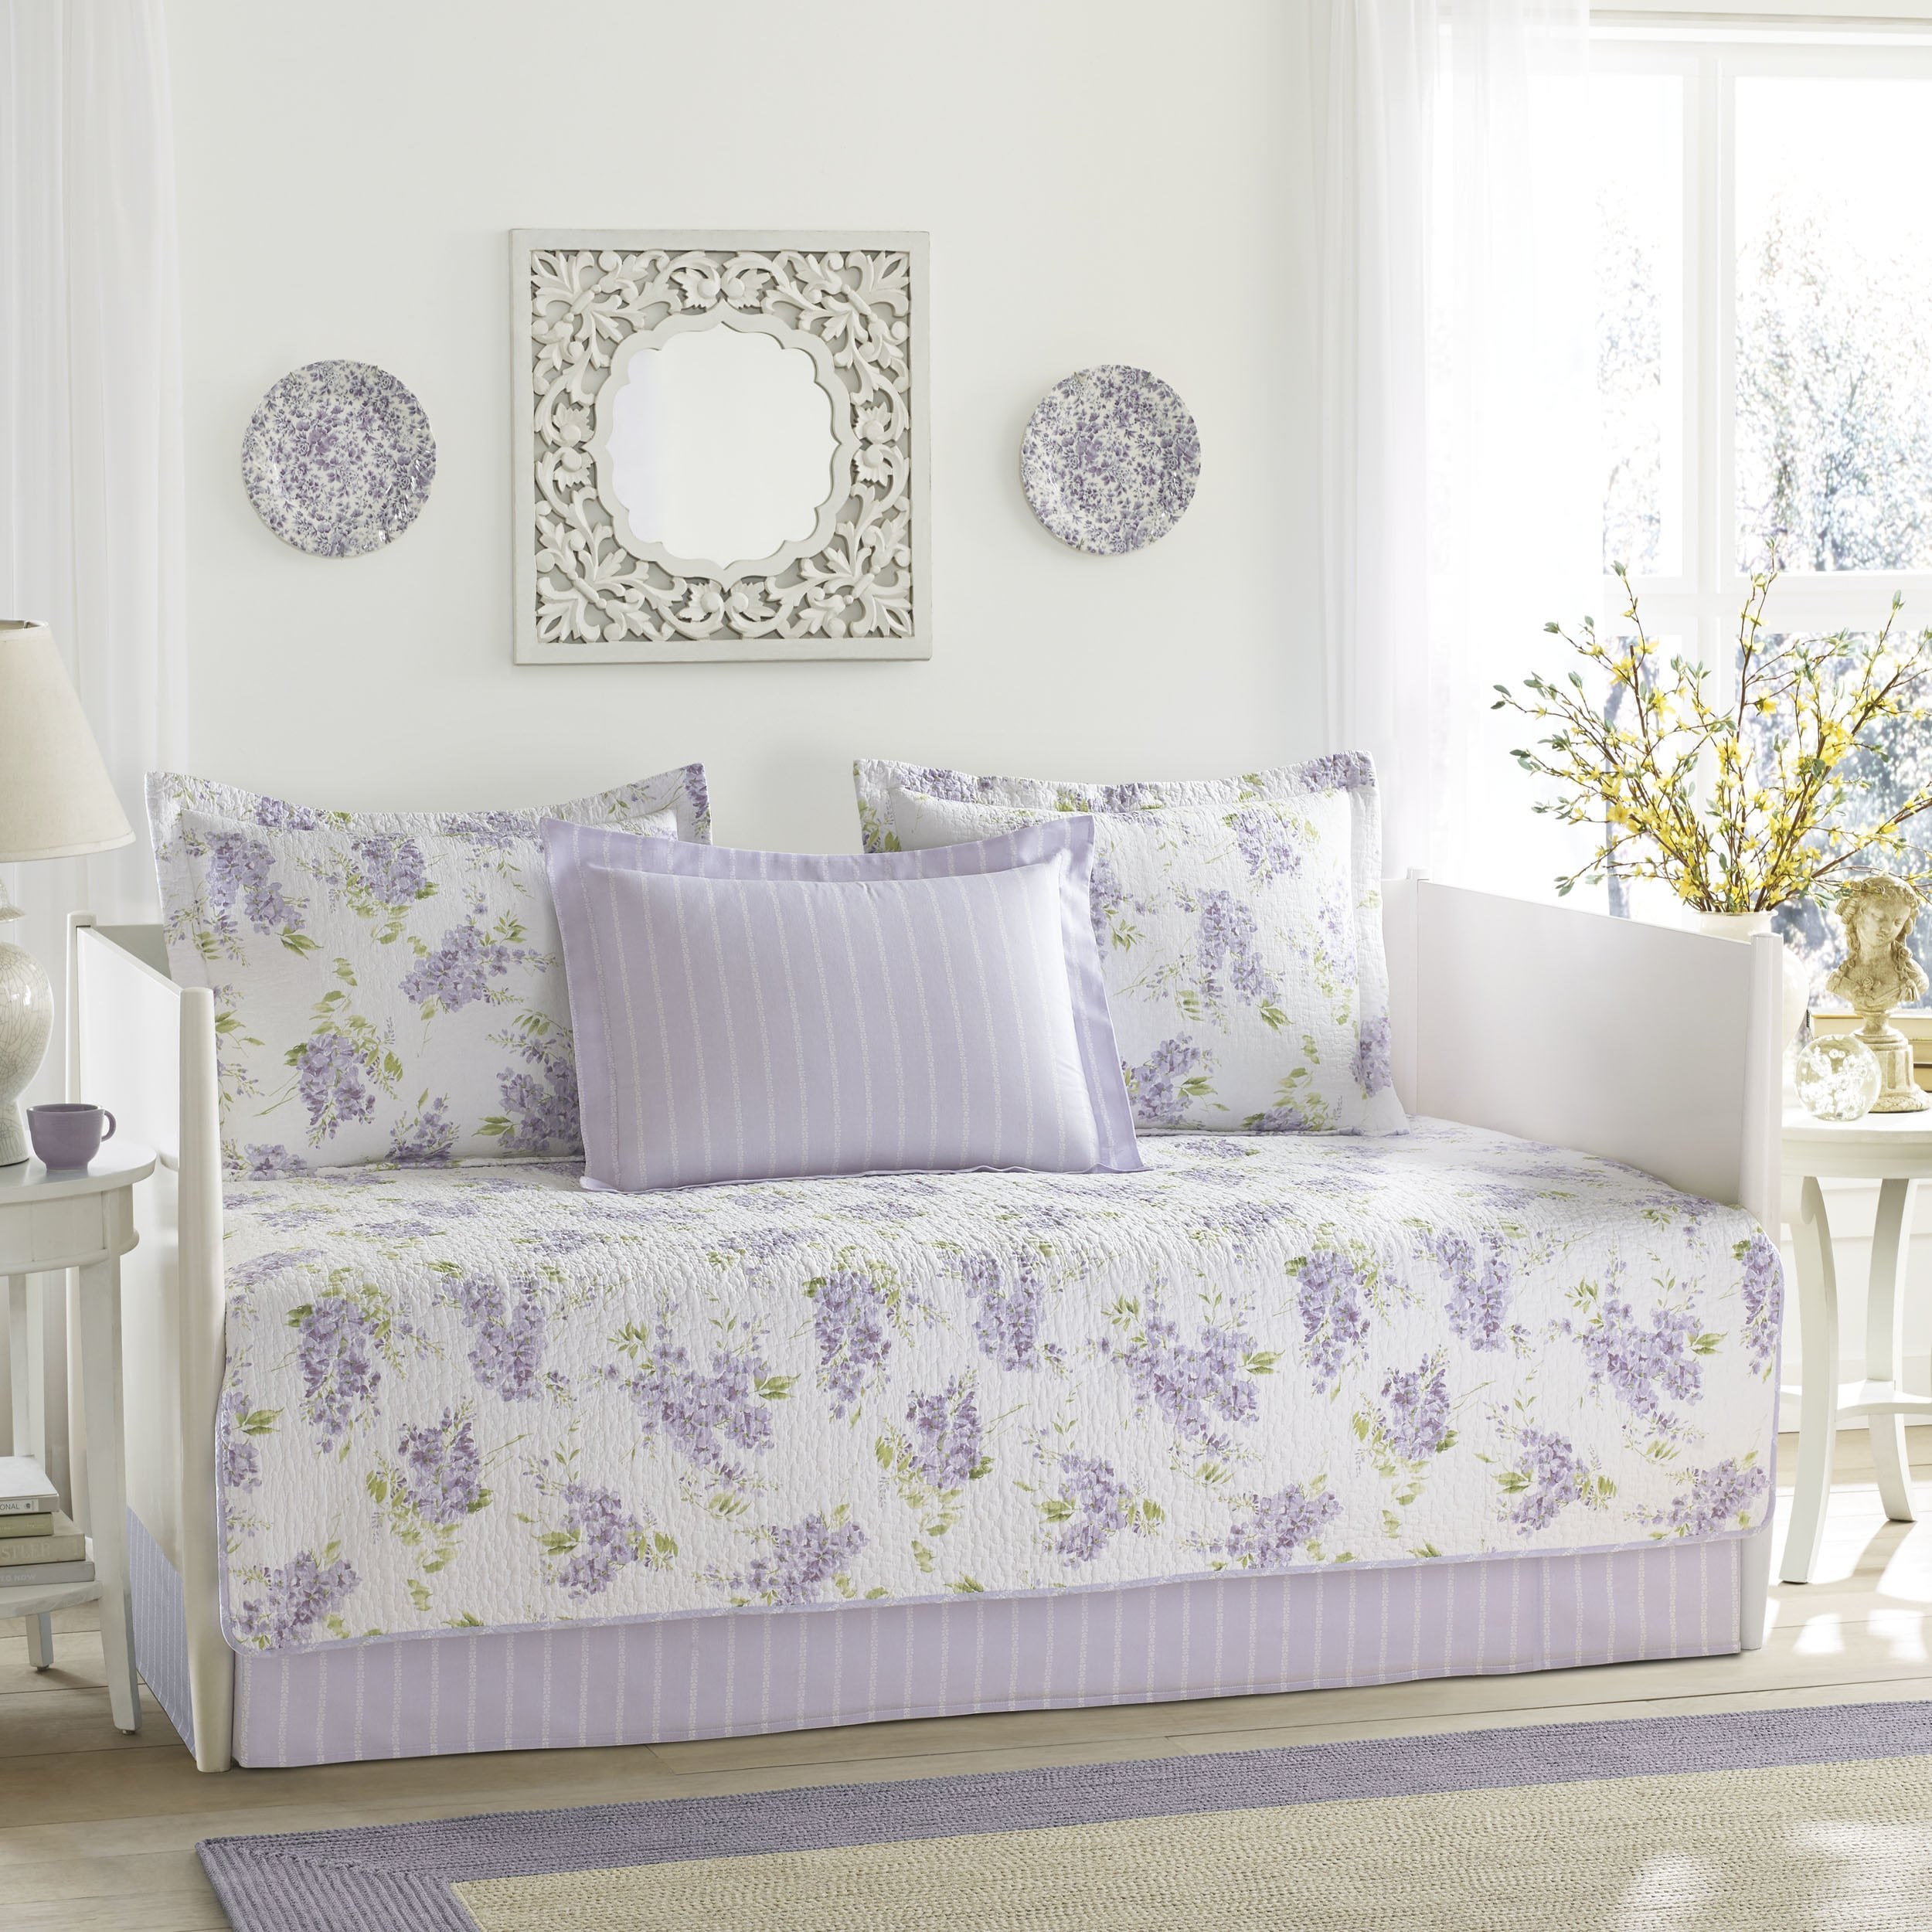 Shop Laura Ashley Keighley Lilac 5 Piece Daybed